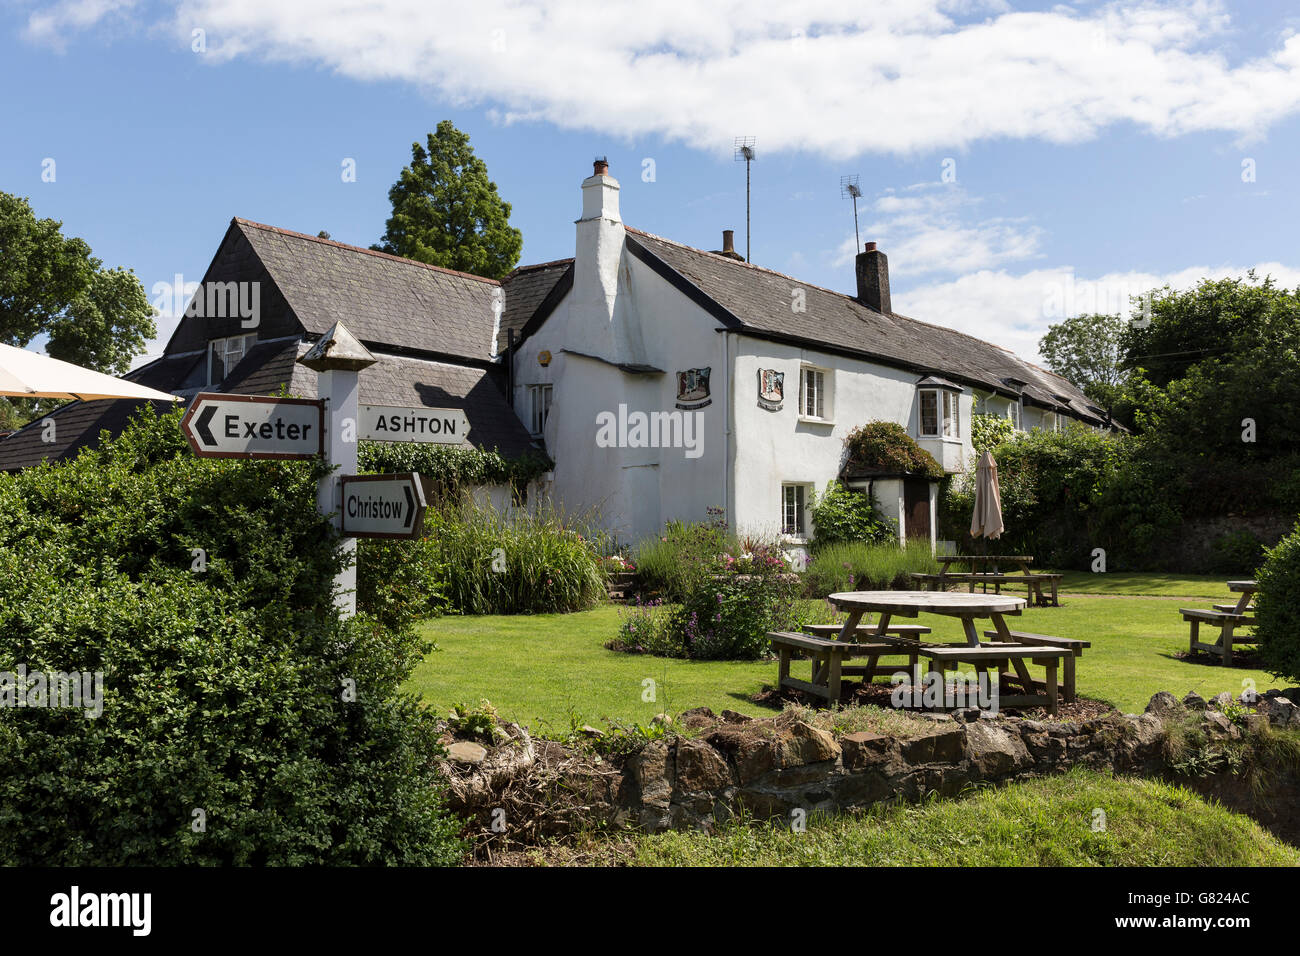 village pub, rural area,Nobody Inn Doddiscombeleigh Devon,Dartmoor National Park, village, historic, outdoors, education, - Stock Image